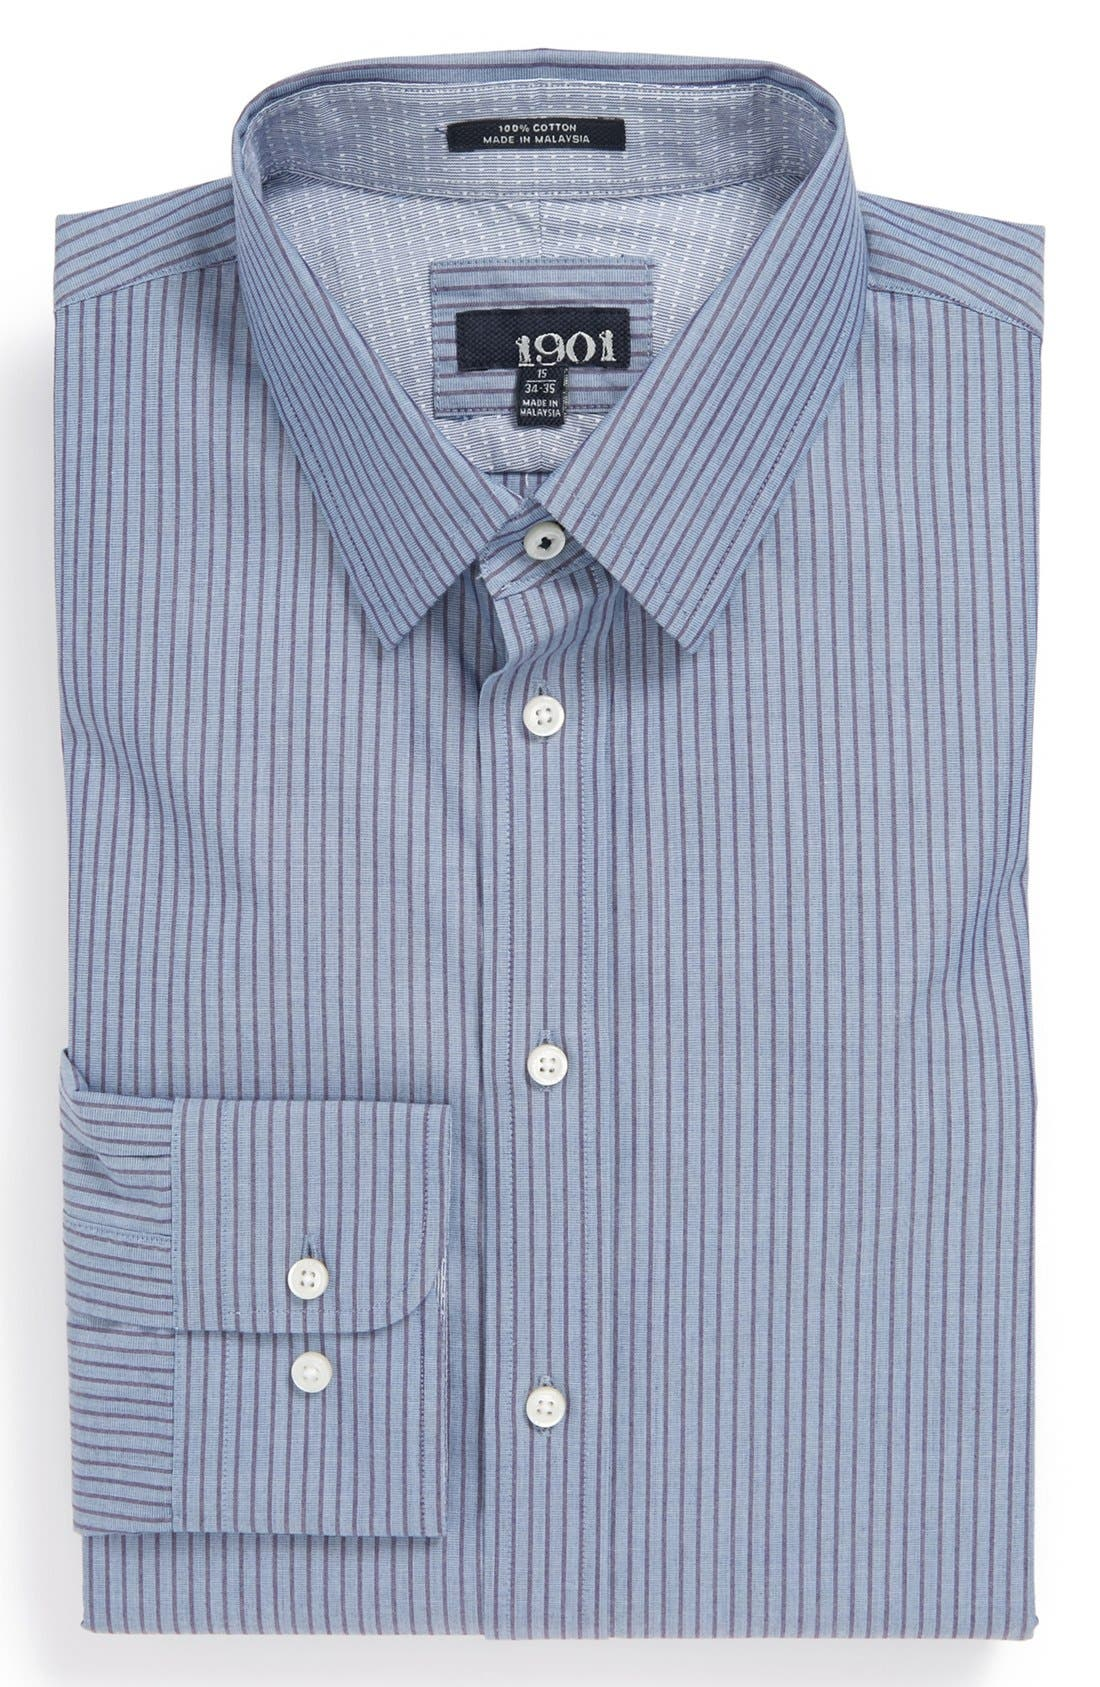 Main Image - 1901 Trim Fit Stripe Dress Shirt